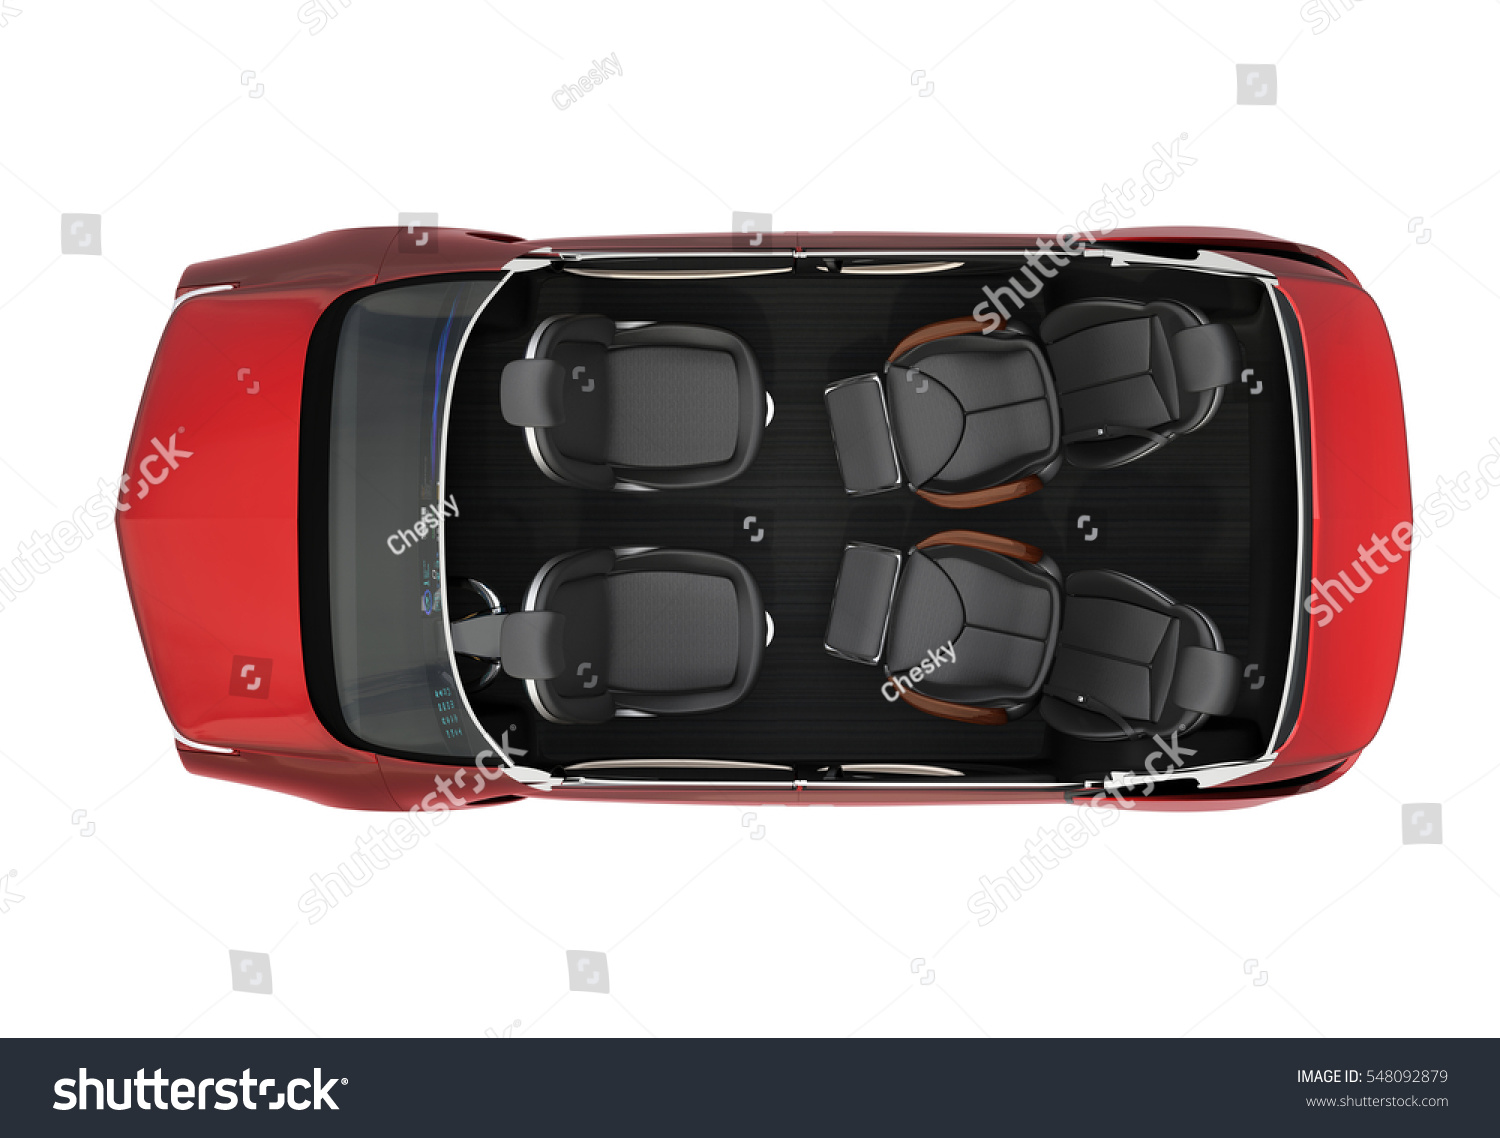 top view autonomous car cutaway image stock illustration 548092879 shutterstock. Black Bedroom Furniture Sets. Home Design Ideas